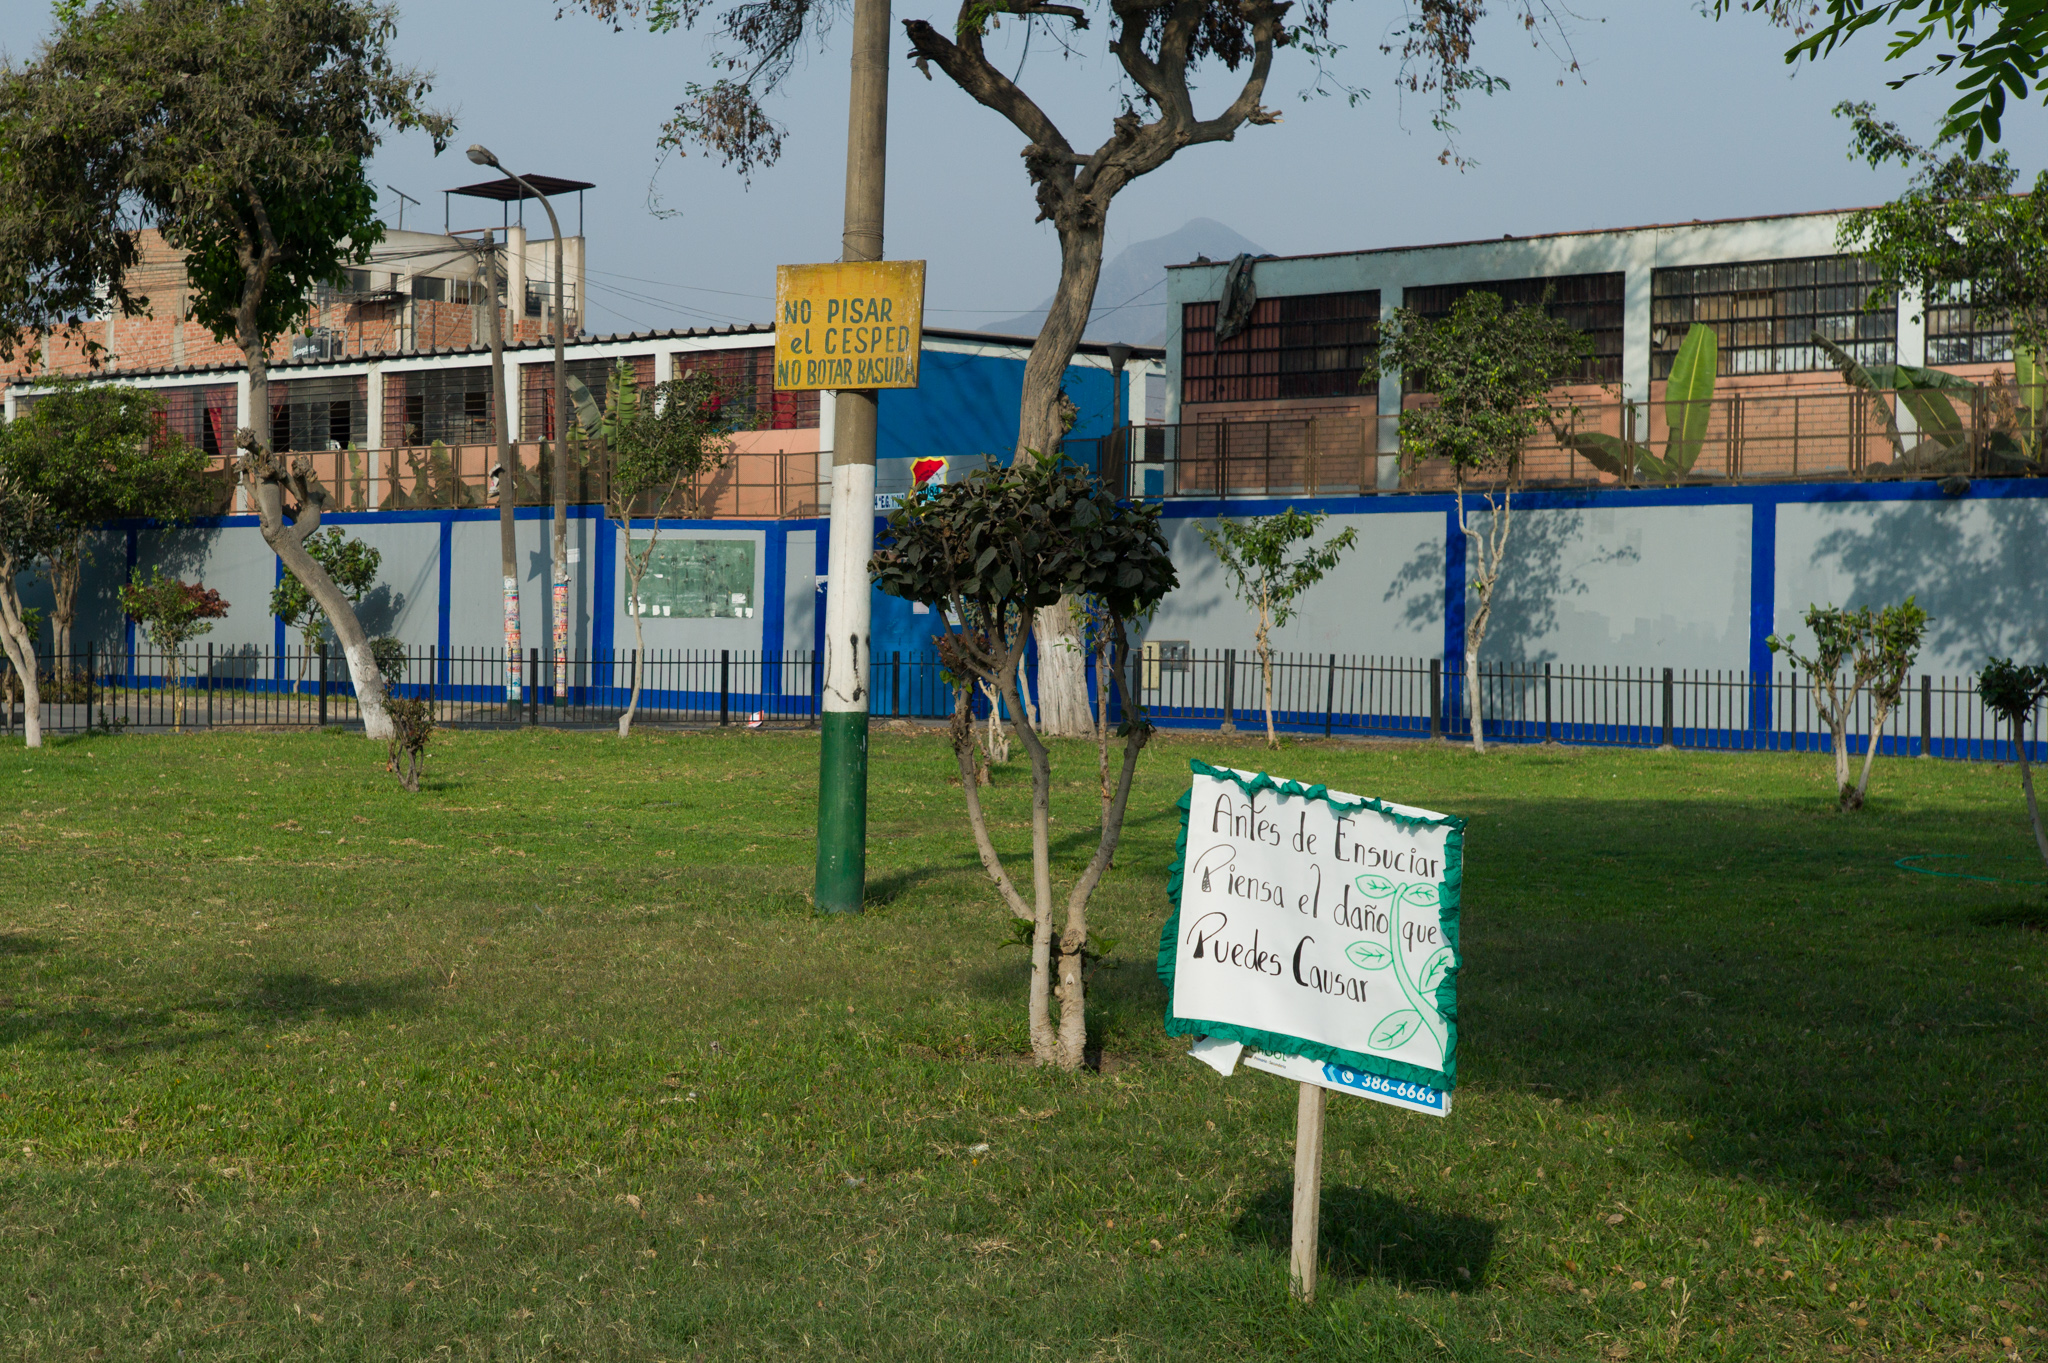 """Another fenced park. The white sign reads """"before making a mess, think of the damage you might cause."""""""